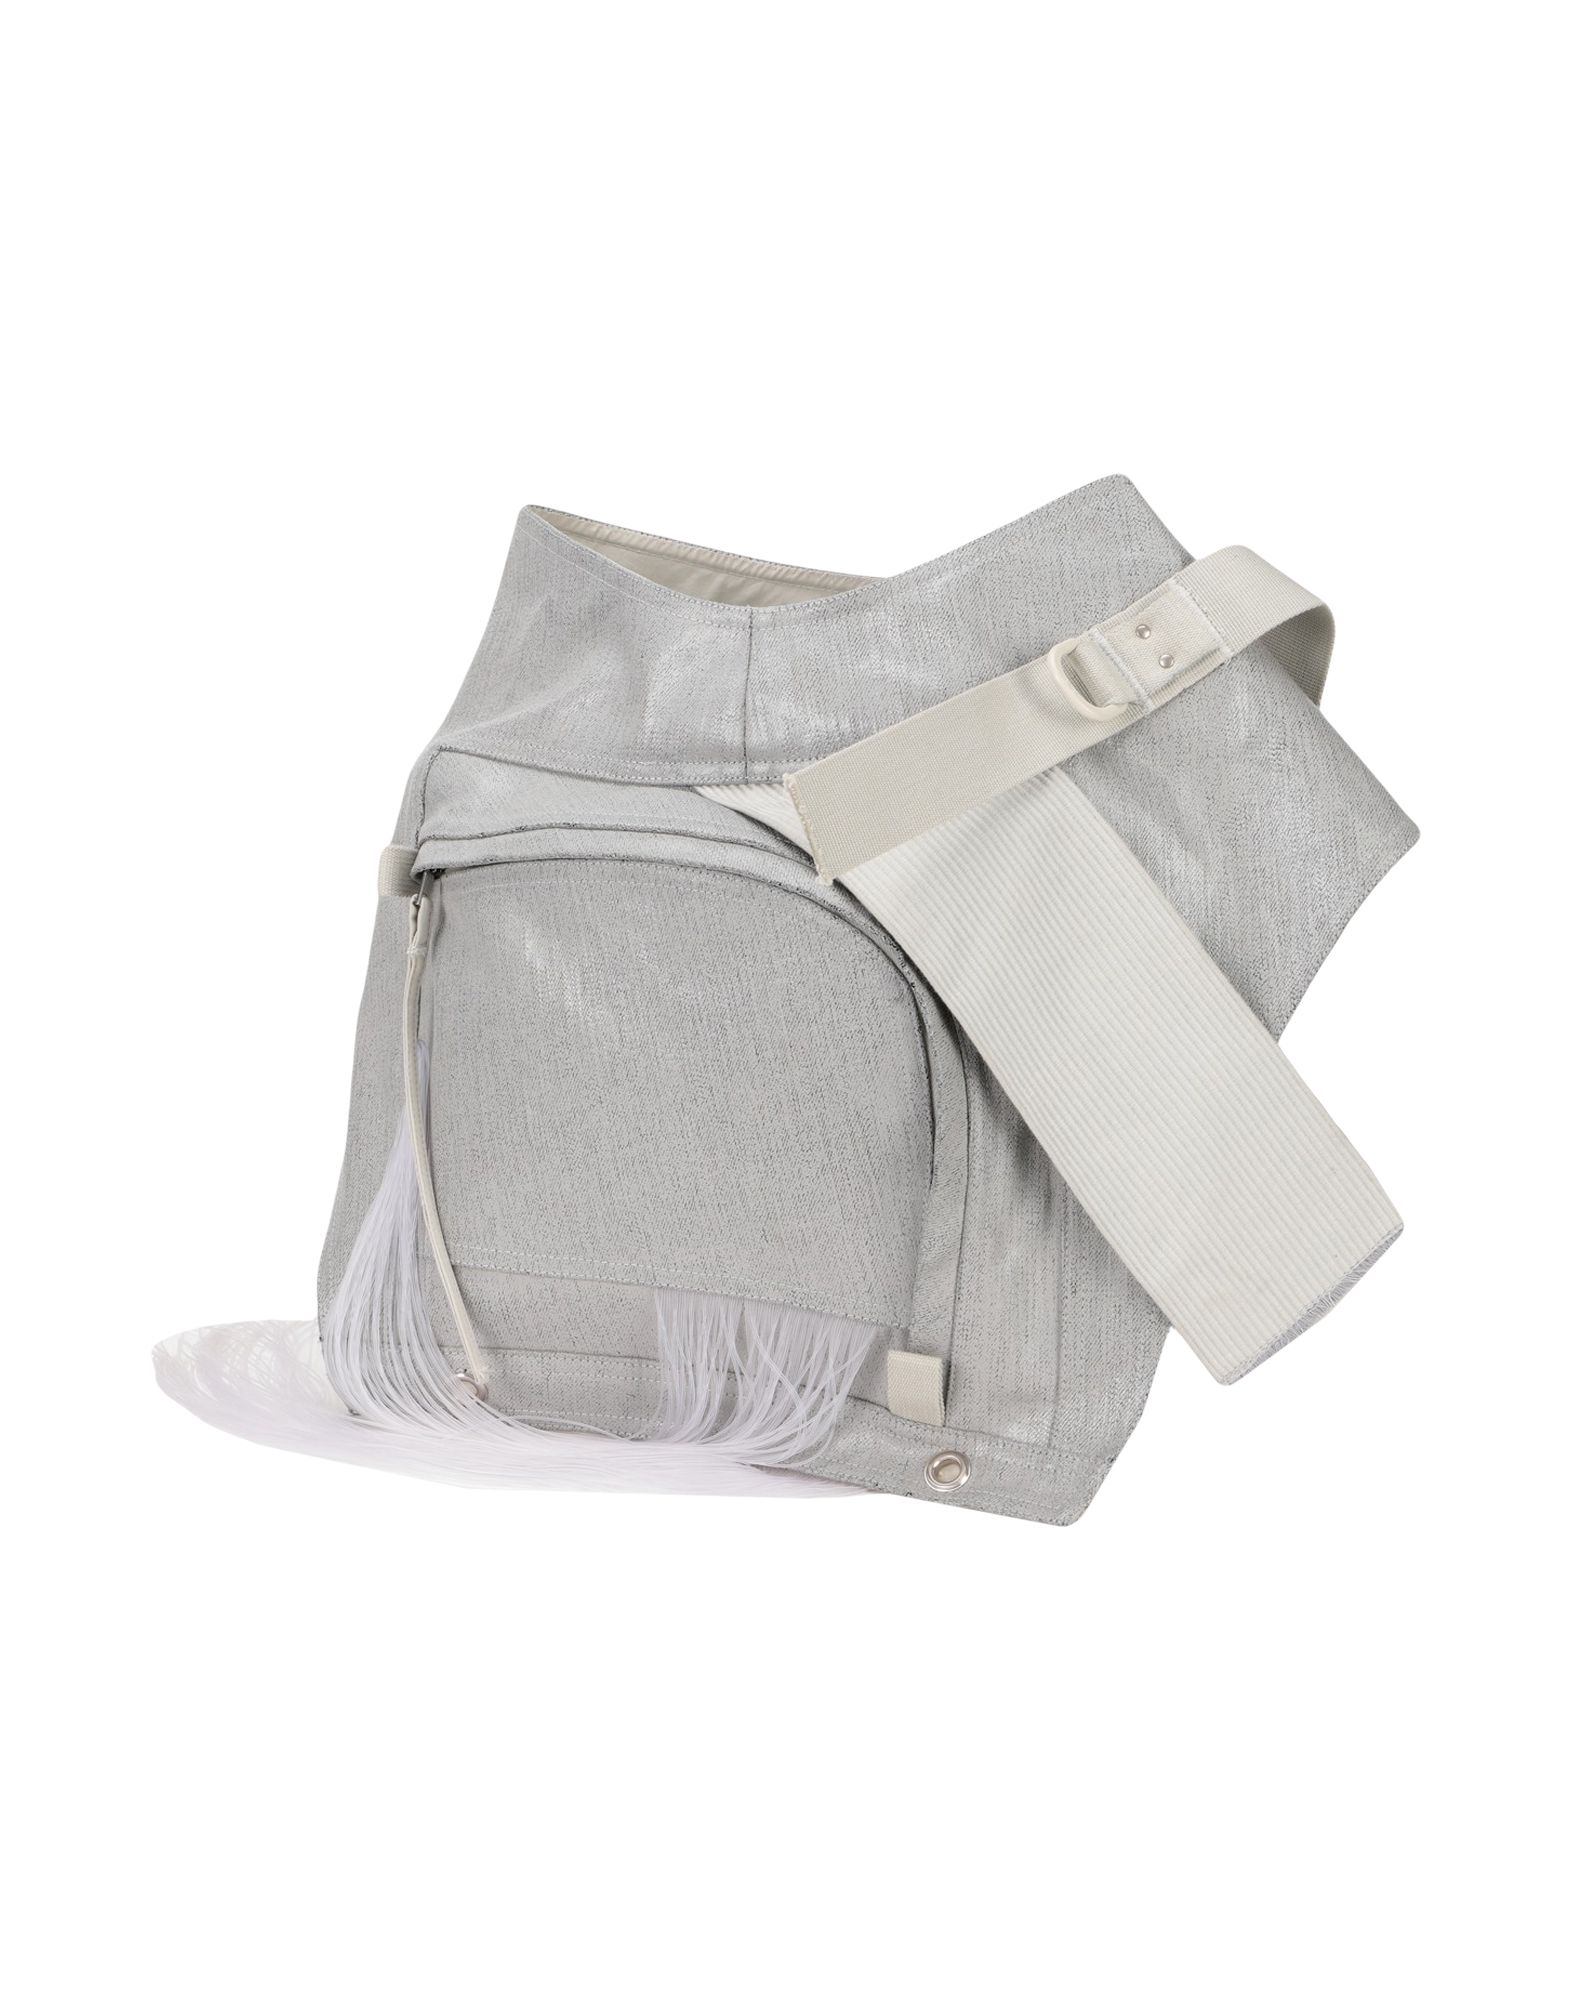 RICK OWENS Backpacks & Fanny packs. mini, plain weave, coated effect, fringe, solid color, zip, internal zip pocket, fully lined. 100% Cotton, Rubber, Polyester